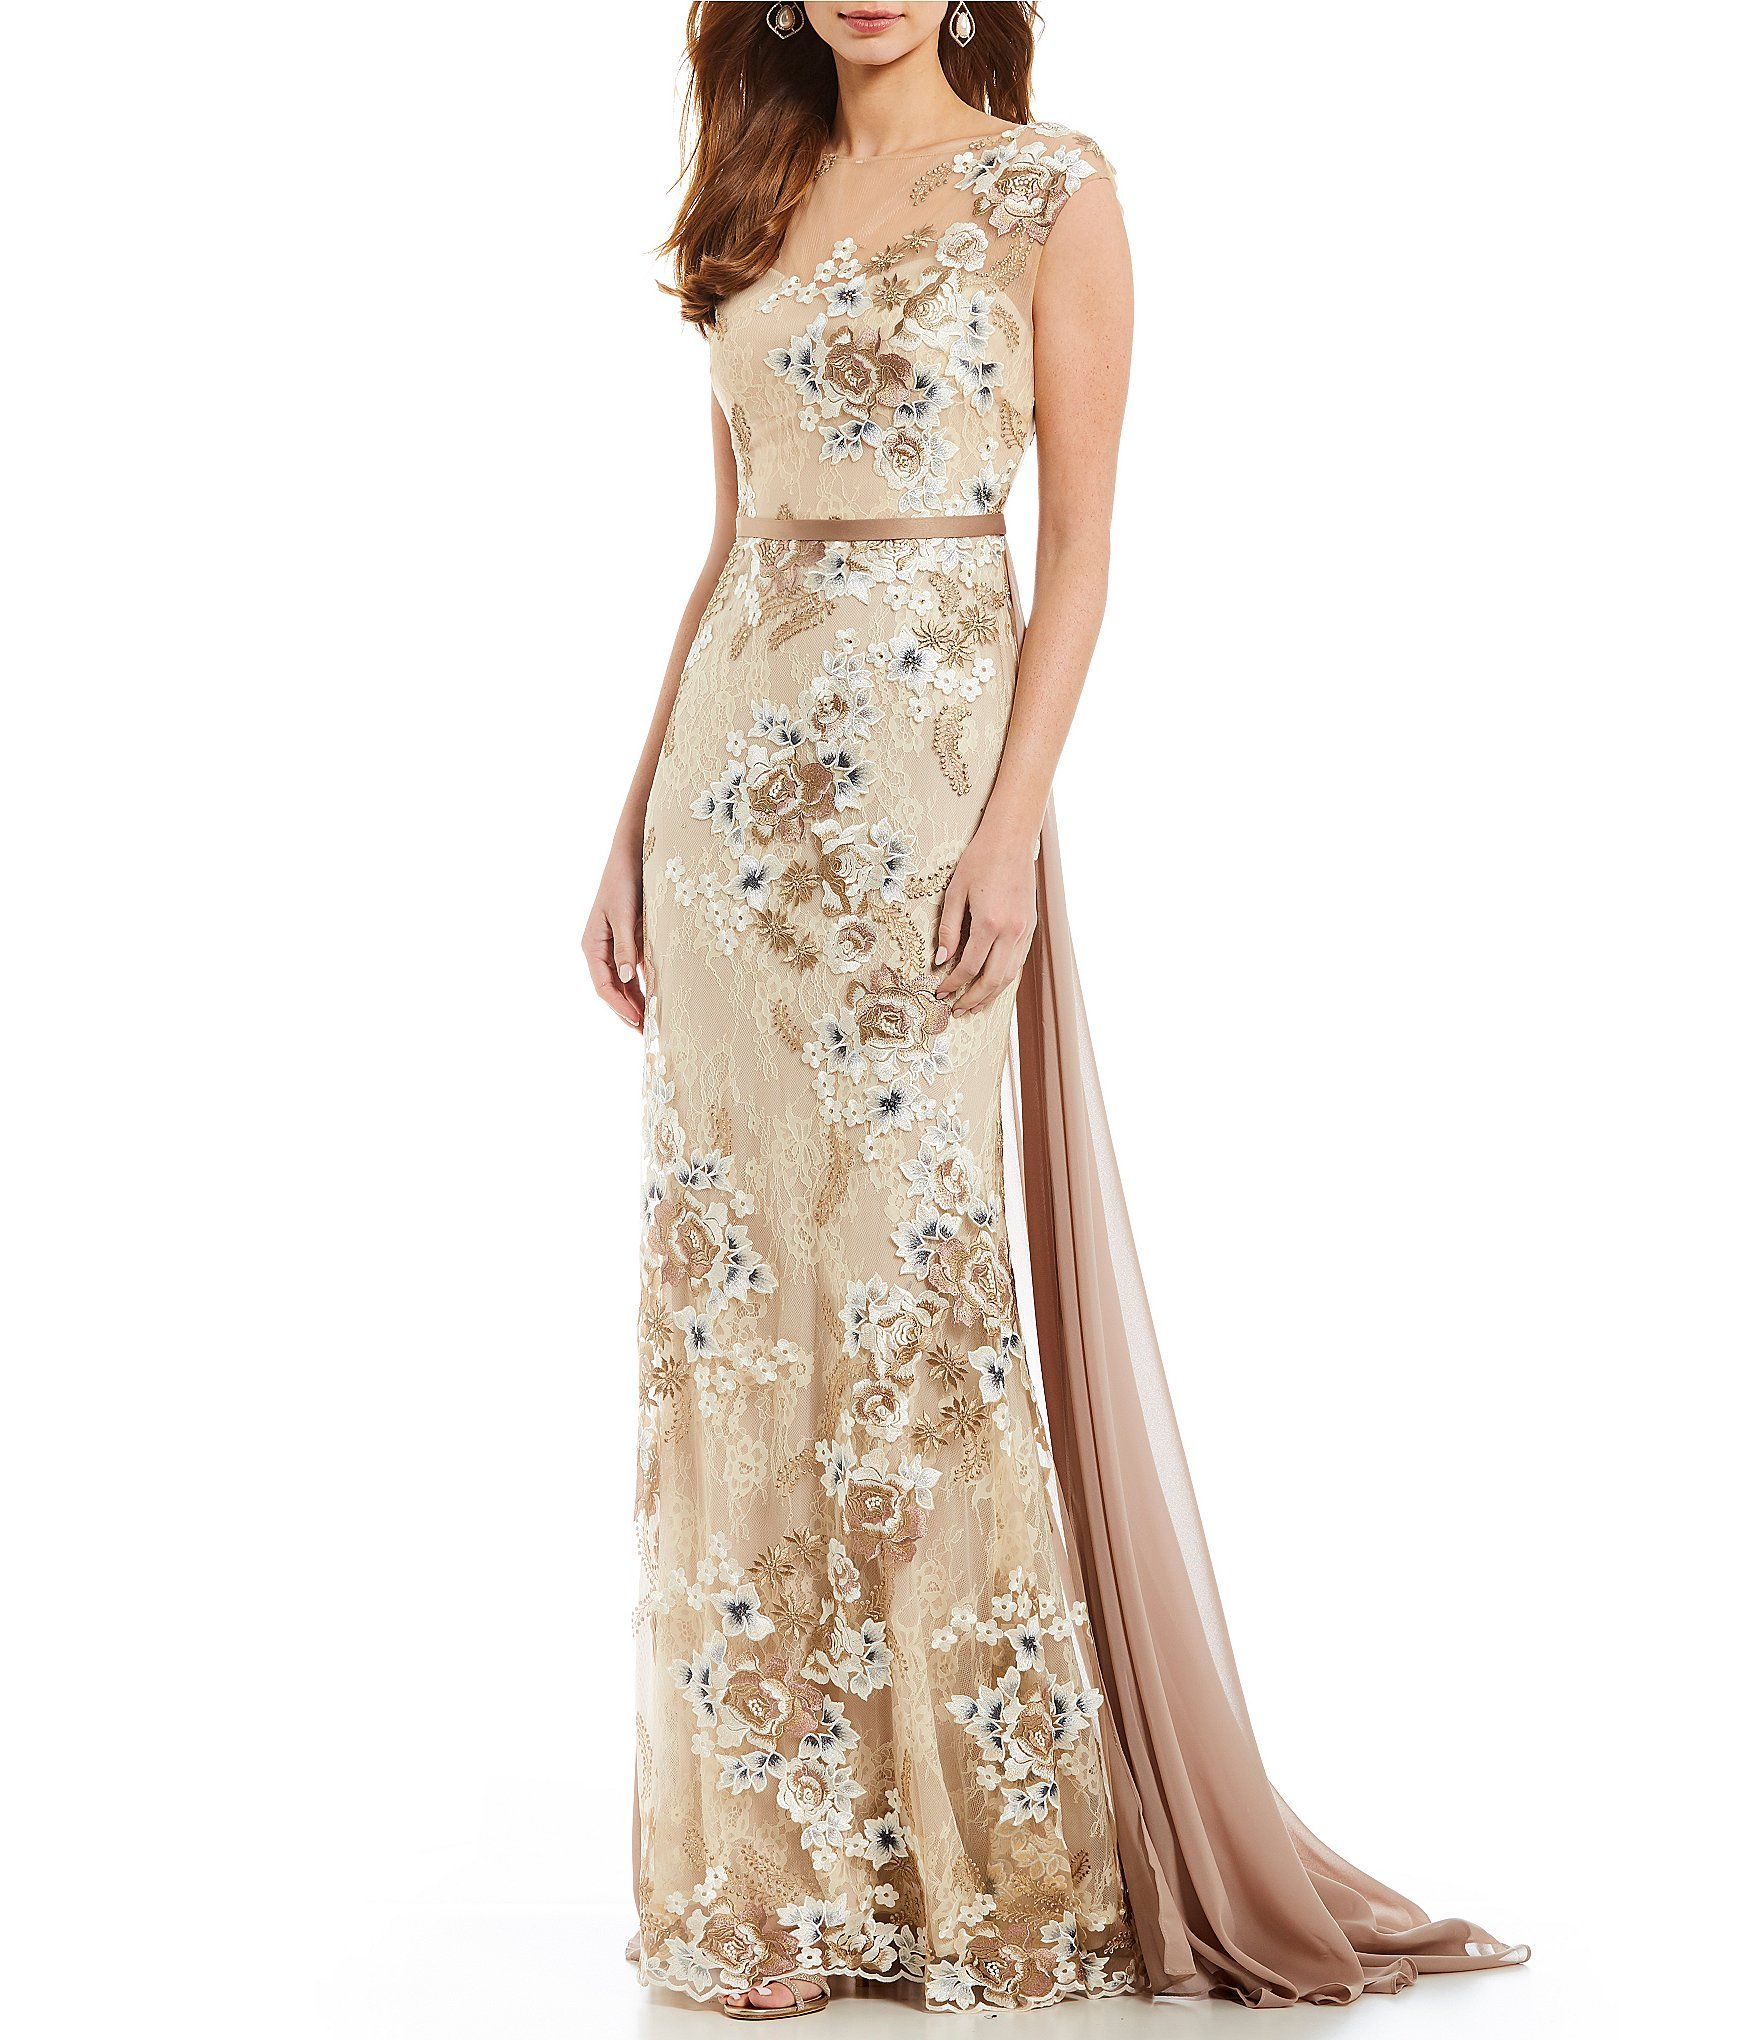 8717a191c80 Terani Couture Floral Embroidered Lace Gown